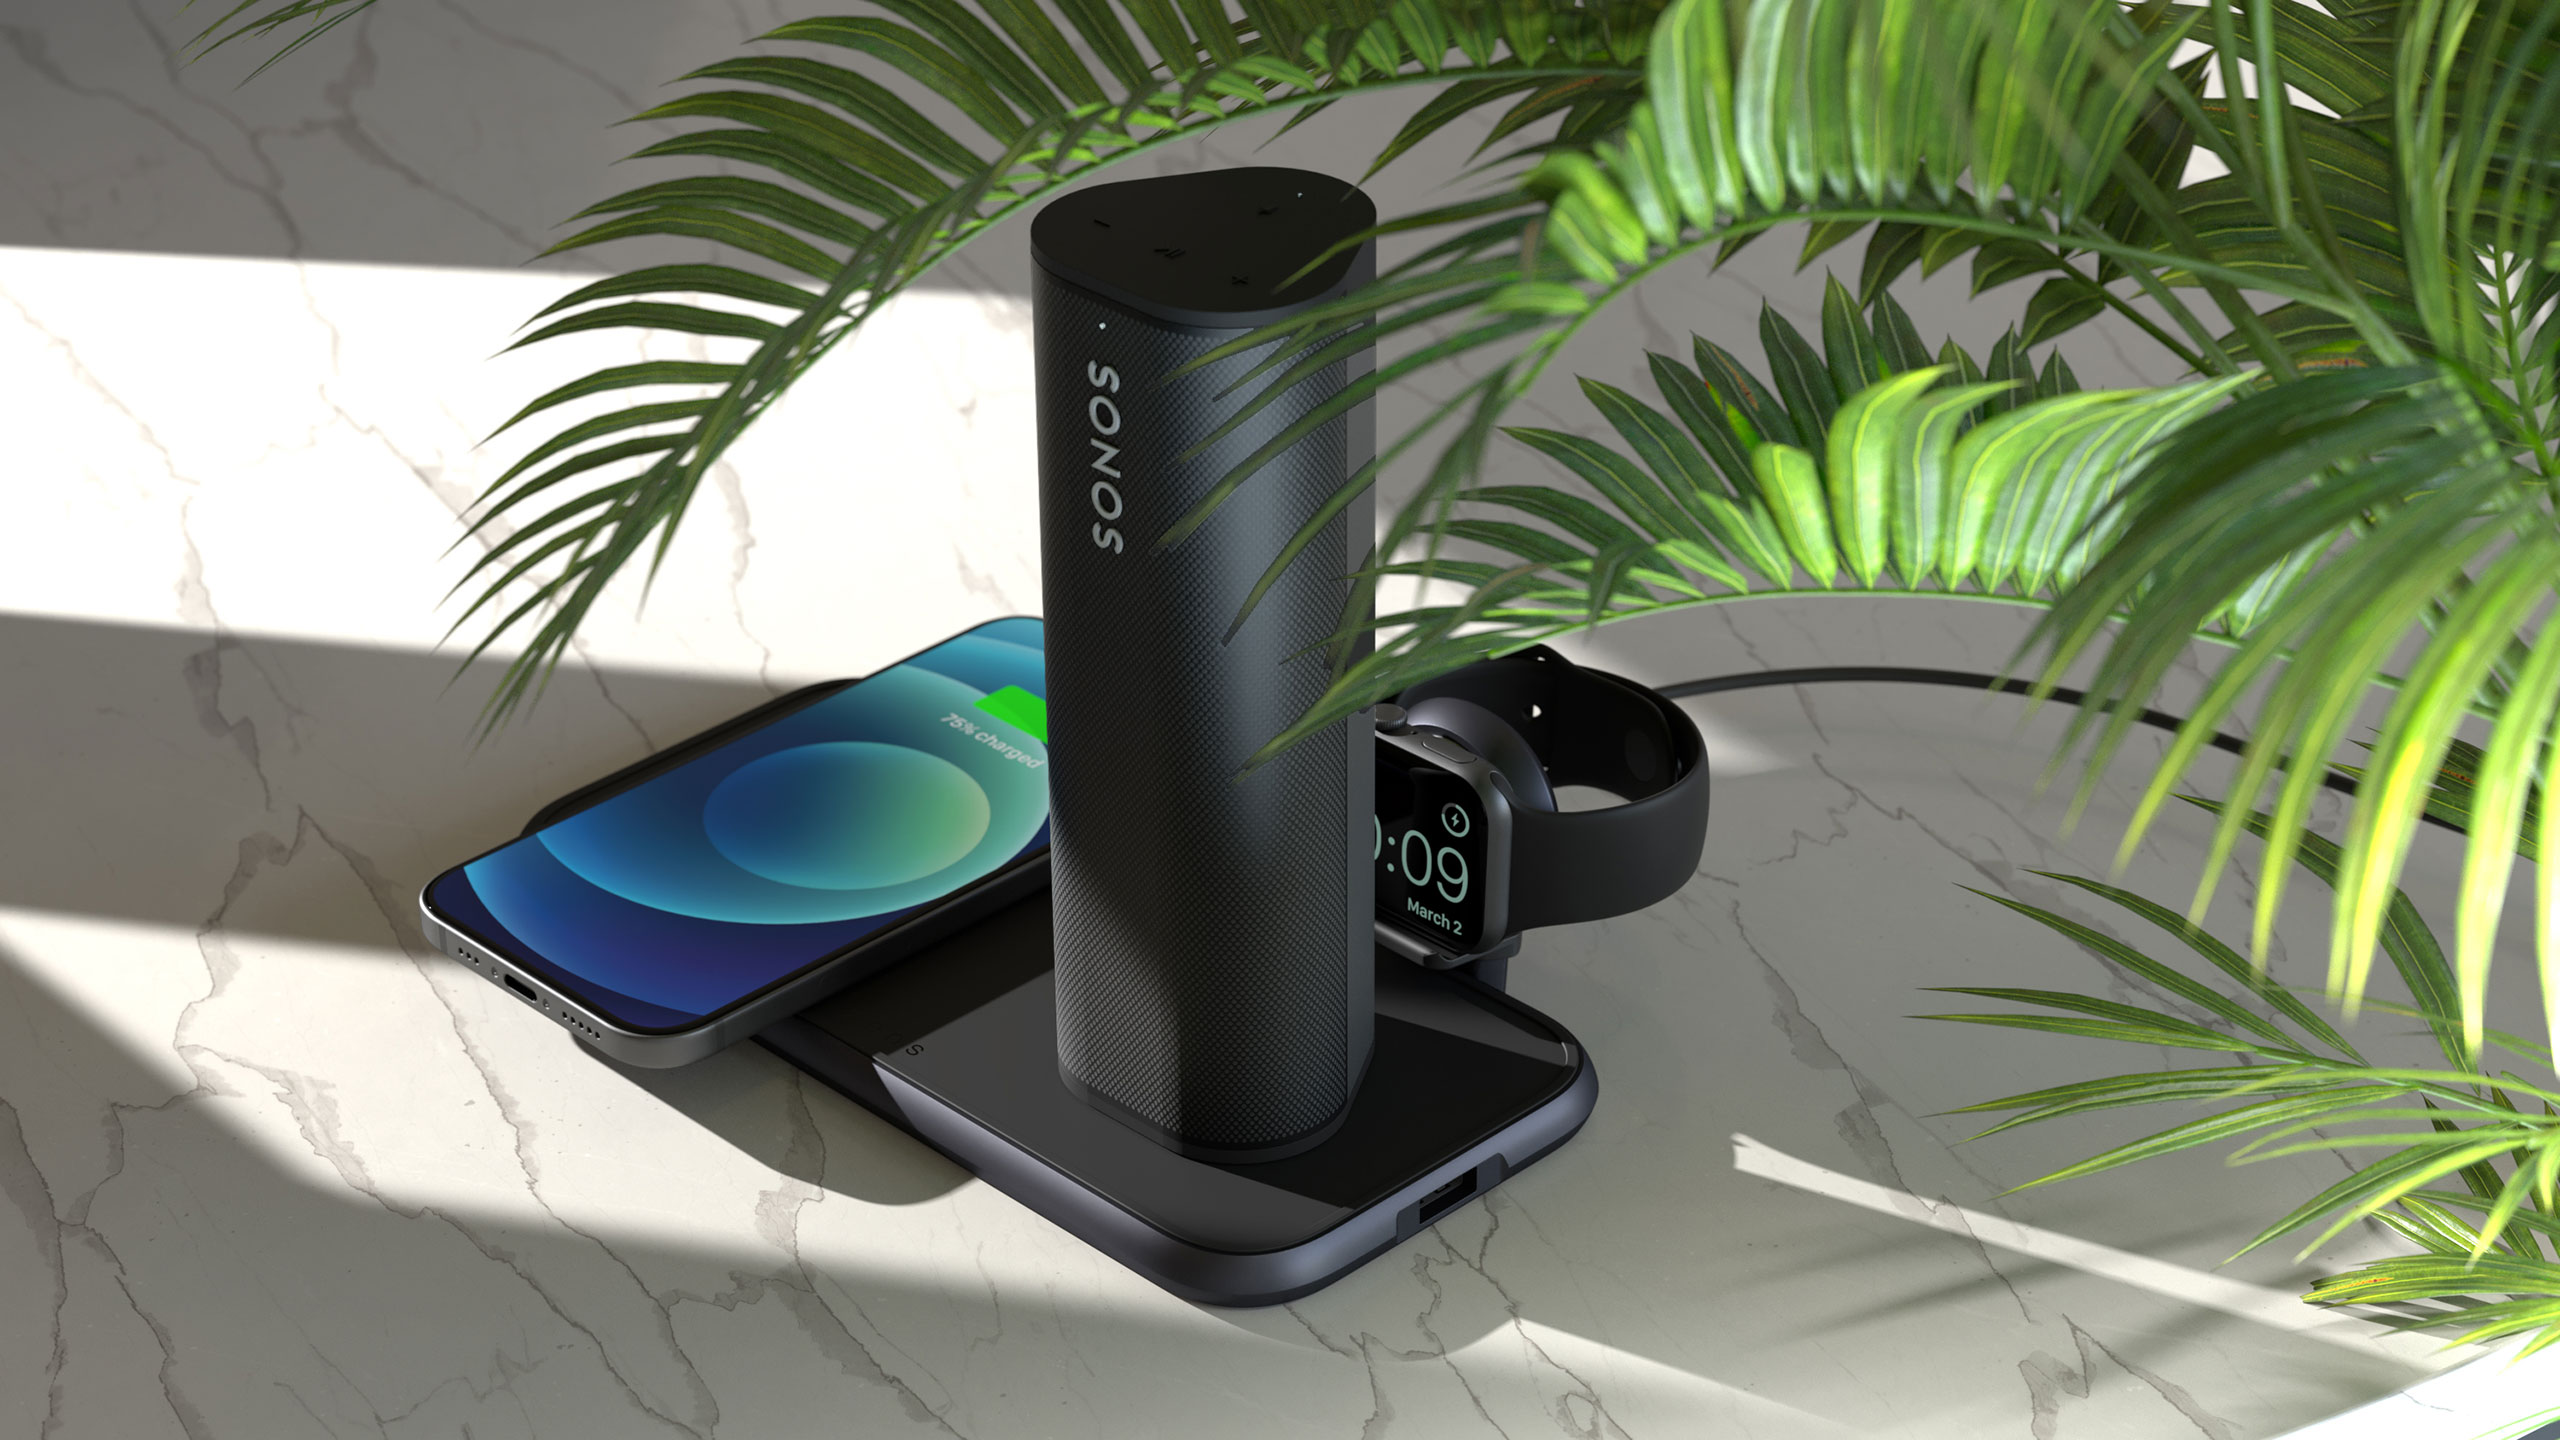 ZEDC14B - Zens 4-in-1 Wireless Charger with Sonos Speaker Lifestyle